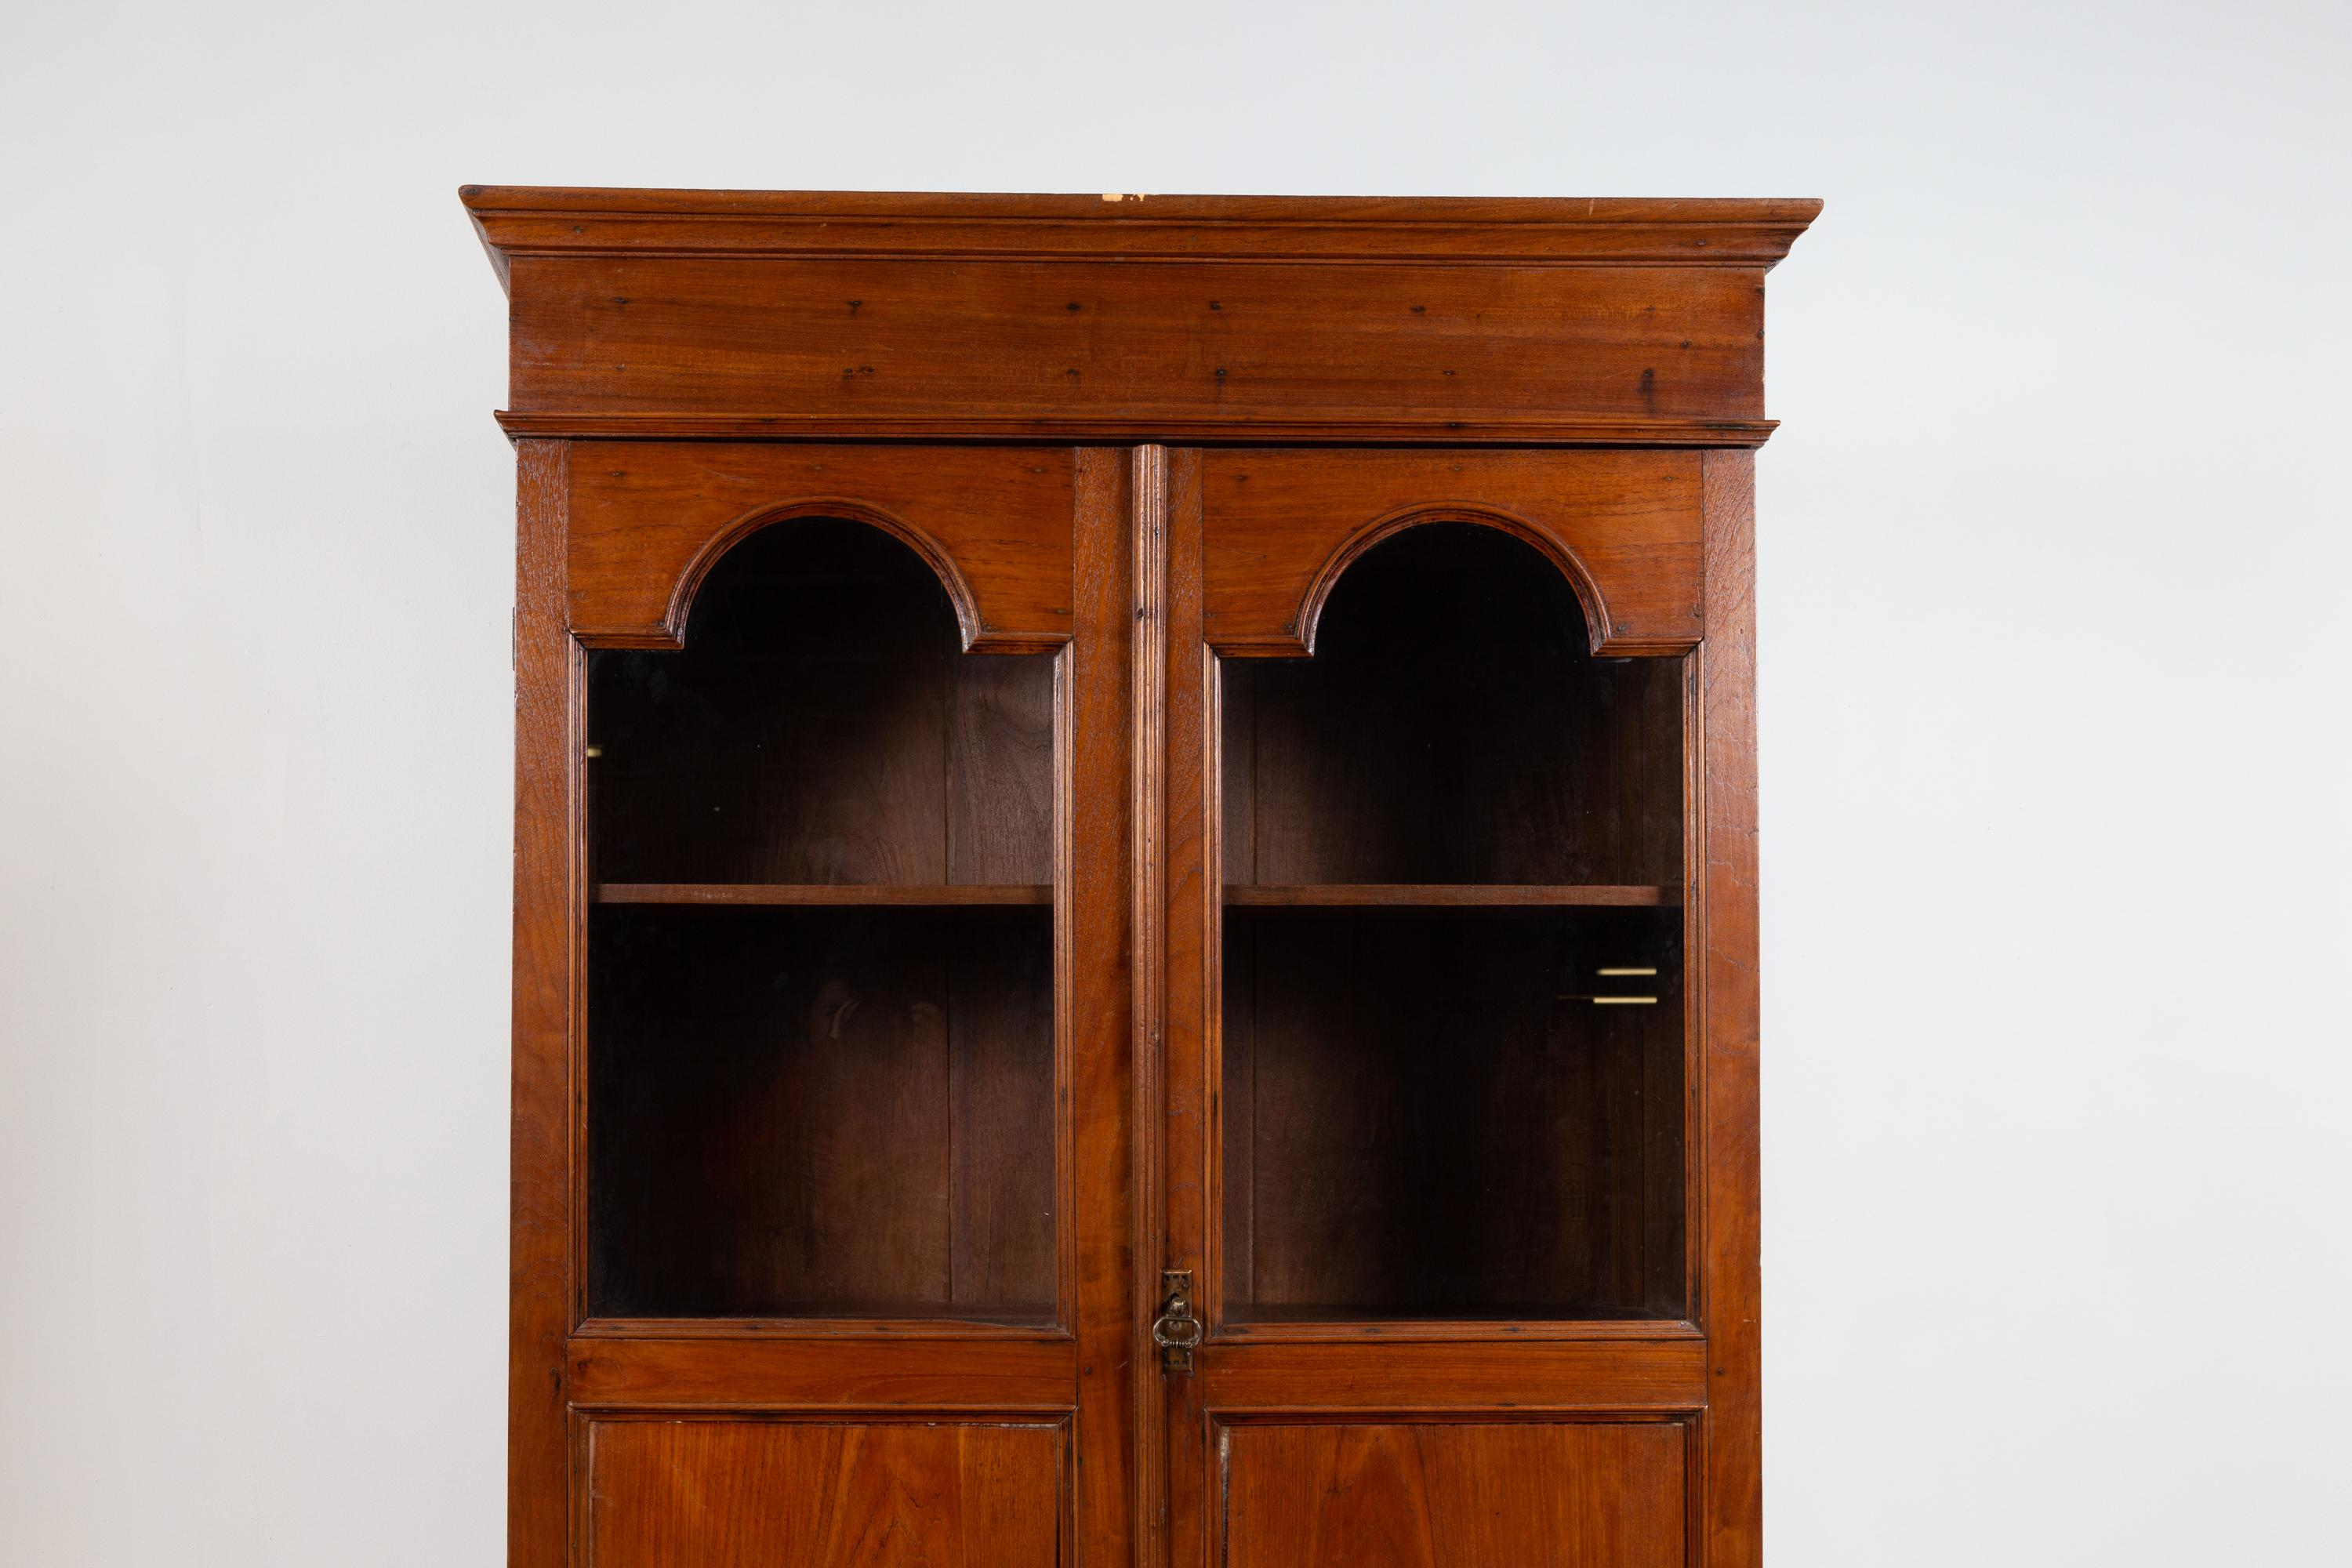 Antique Dutch Colonial Tall China Cabinet With Glass Doors And Arched Motifs